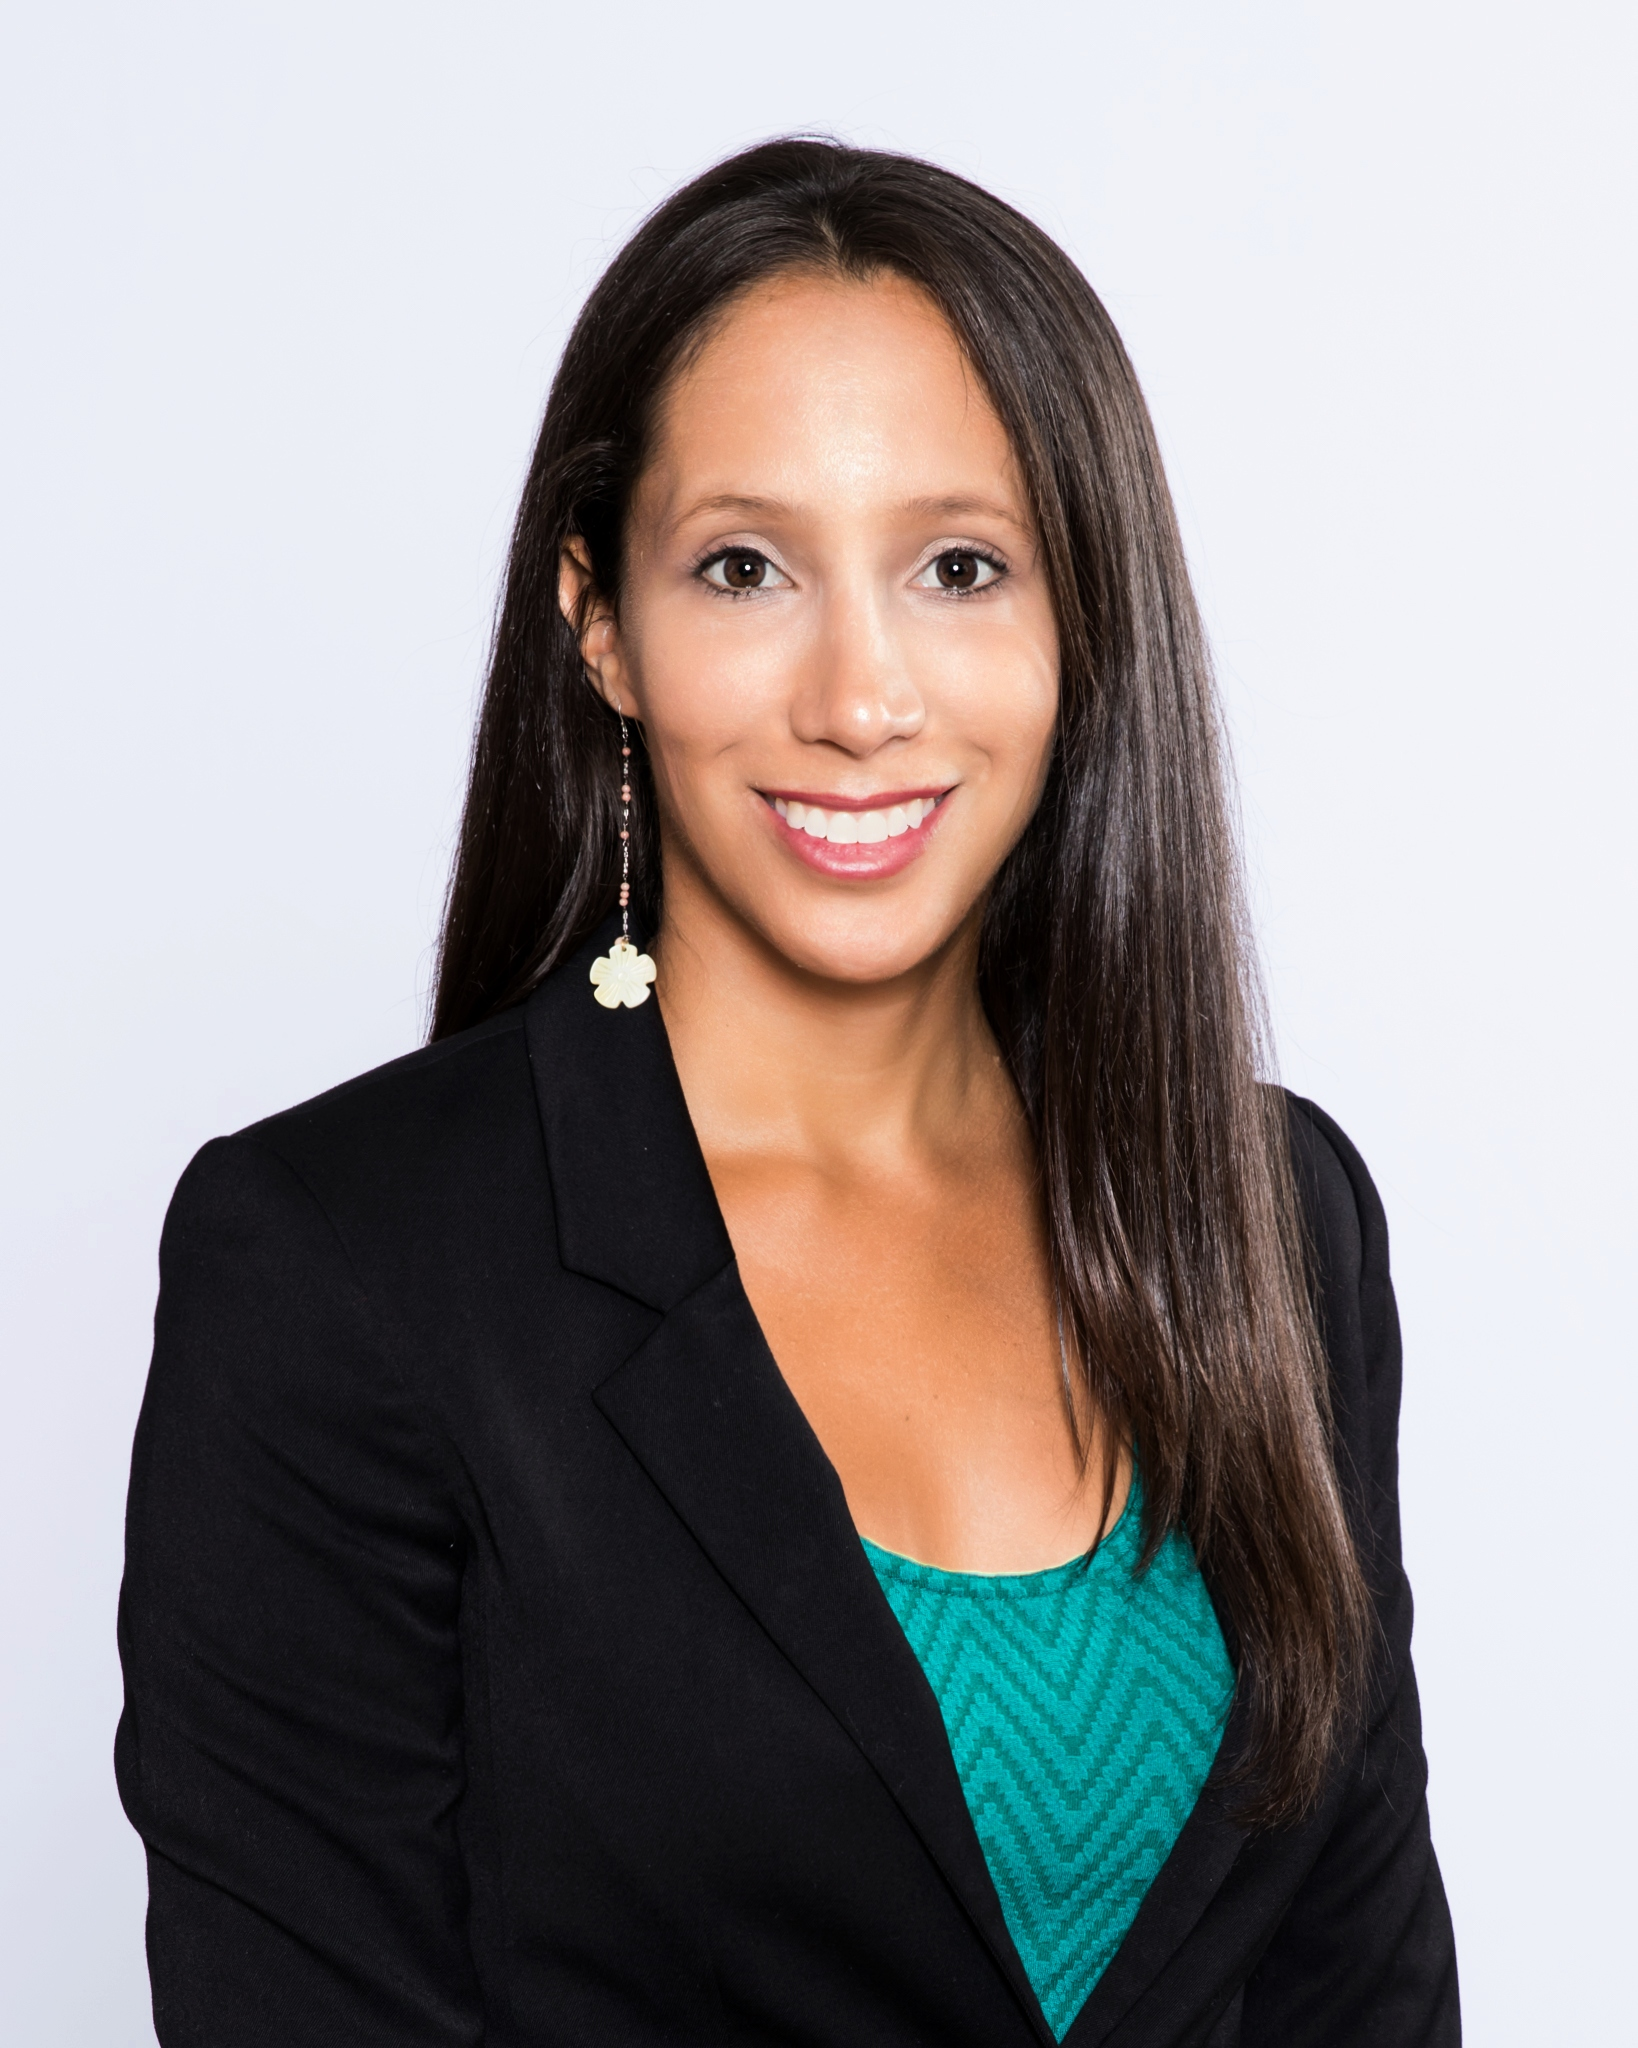 Diverse Learner Teacher, Grades 2-5 Monolingual - This is Veronica Acuña's 14th year working in education in Chicago. She earned her undergraduate degree at the University of Wisconsin-Madison in Special Education and Master's Degree in Educational Studies with an ESL and Bilingual-Spanish endorsement at the University of Illinois-Chicago. While she was born in Skokie, IL, she is a dual citizen of both the USA and Chile. She achieved National Board Certification in 2008 as an Exceptional Needs Specialist, and achieved NBC renewal in 2018. When not at school, she loves participating in activities that help her to continue to learn and grow. These activities include; endurance events, small group Bible studies at Soul City Church, taking language, dance, yoga, and art or cooking classes, and traveling and exploring new cities and restaurants. She also loves movies and Netflix :) Her family is, and will always be, her foundation and the center and core of her priorities.